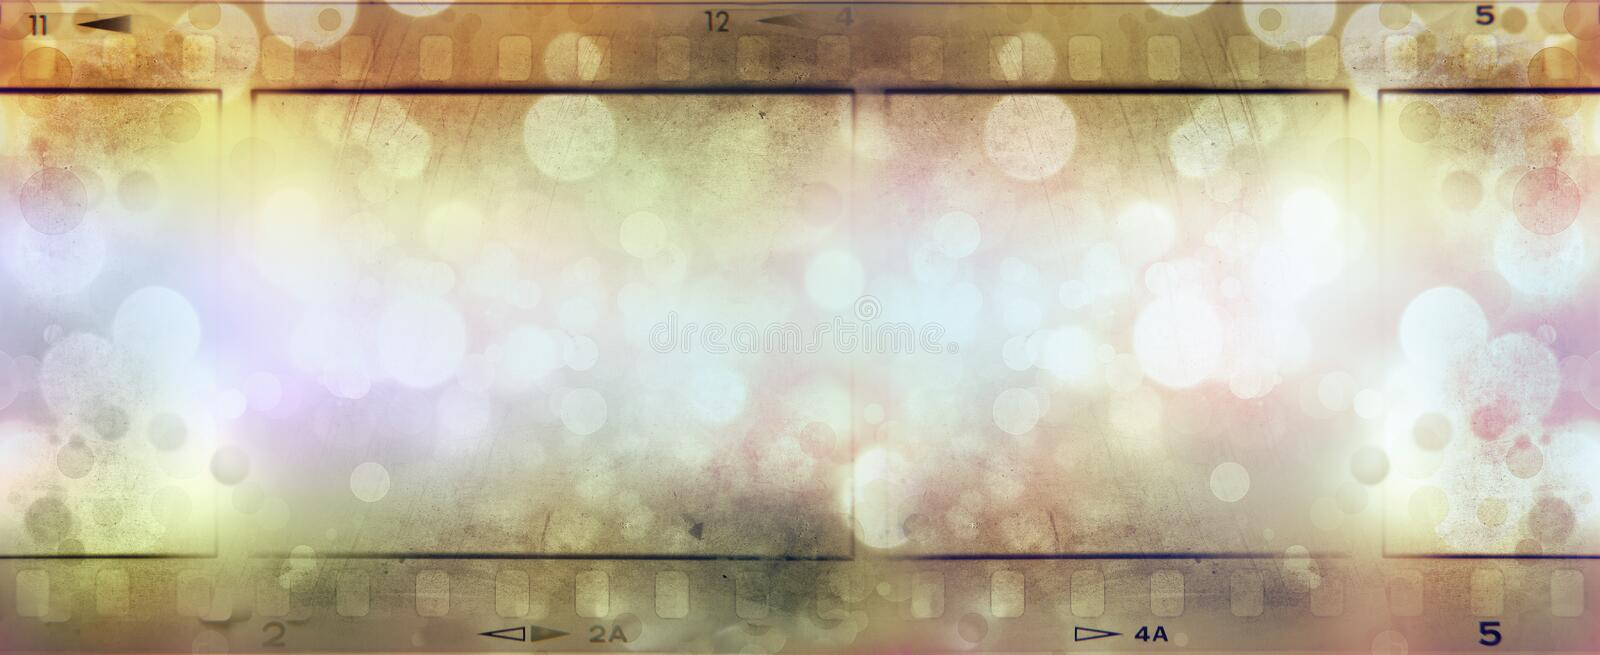 Film strips background royalty free stock image